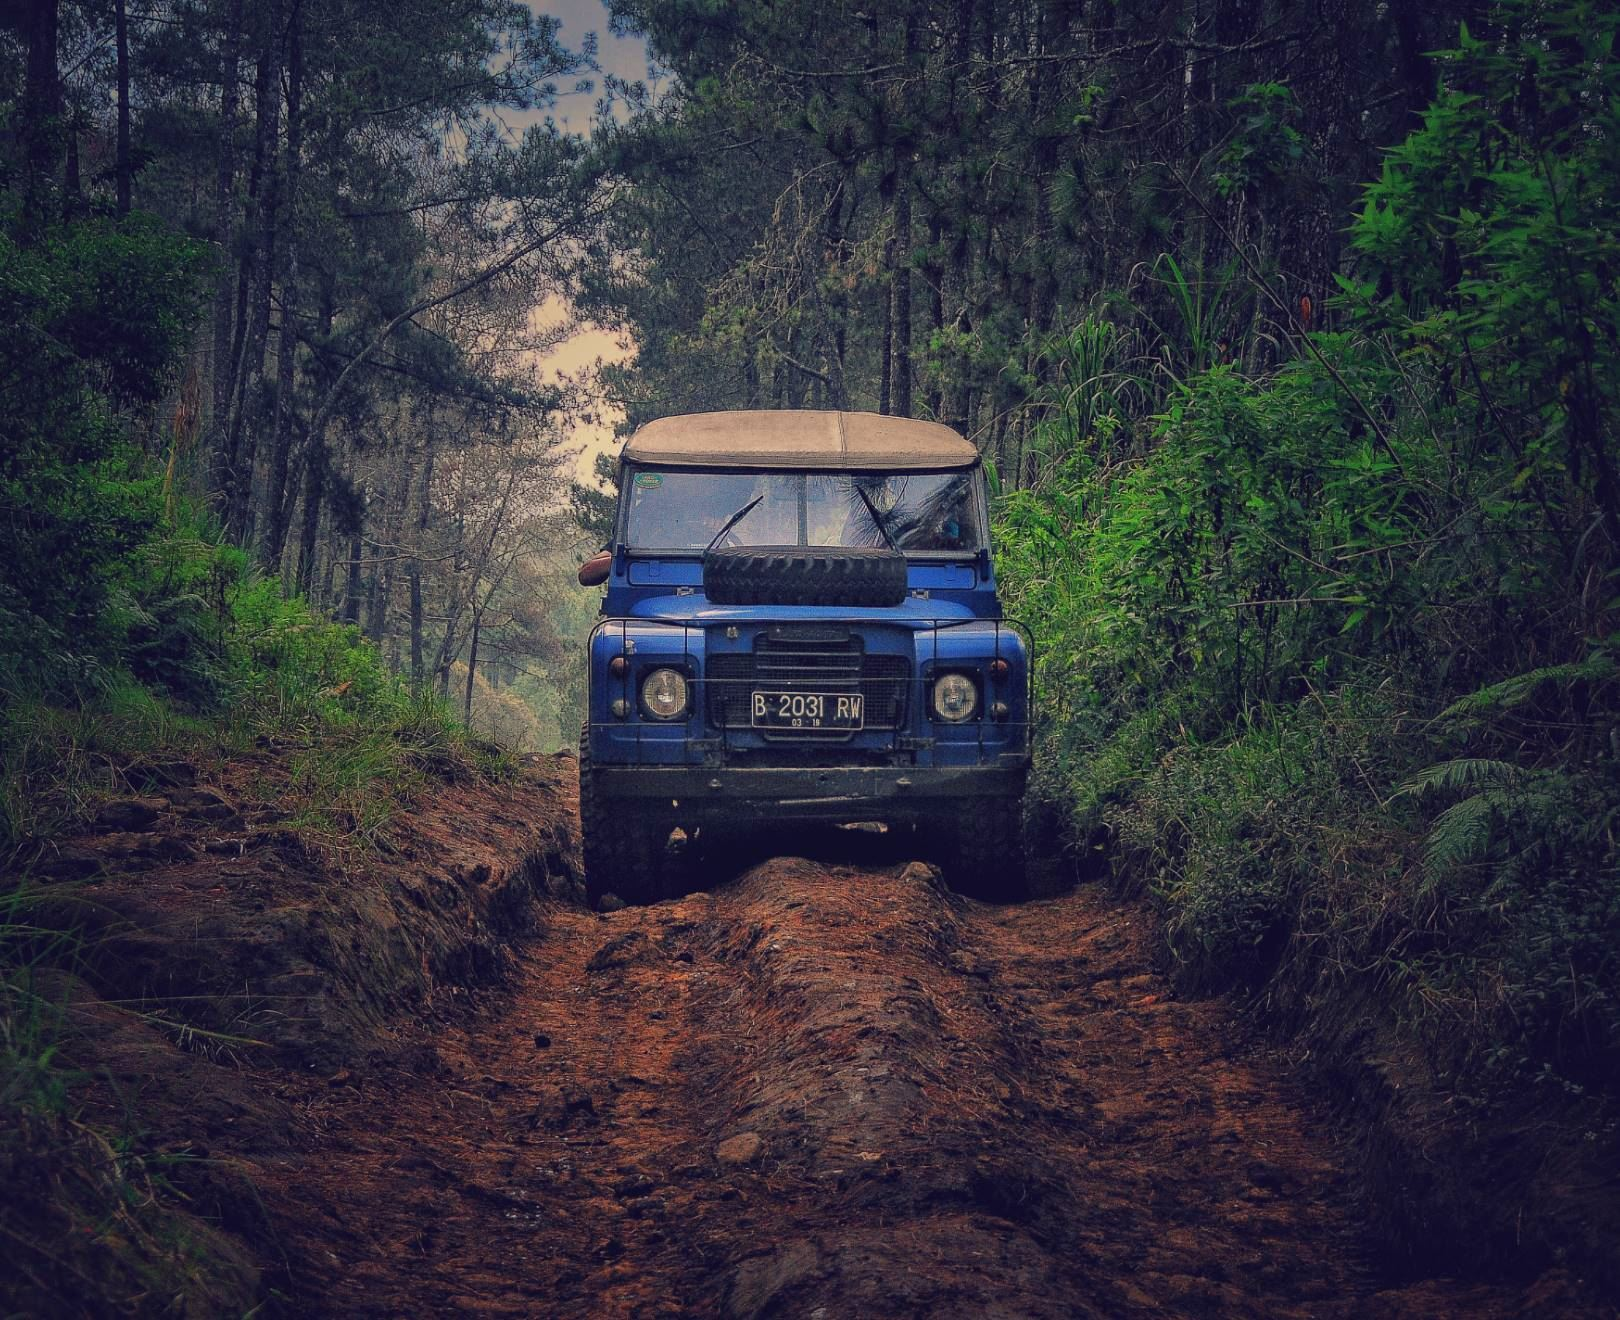 4X4 Offroading